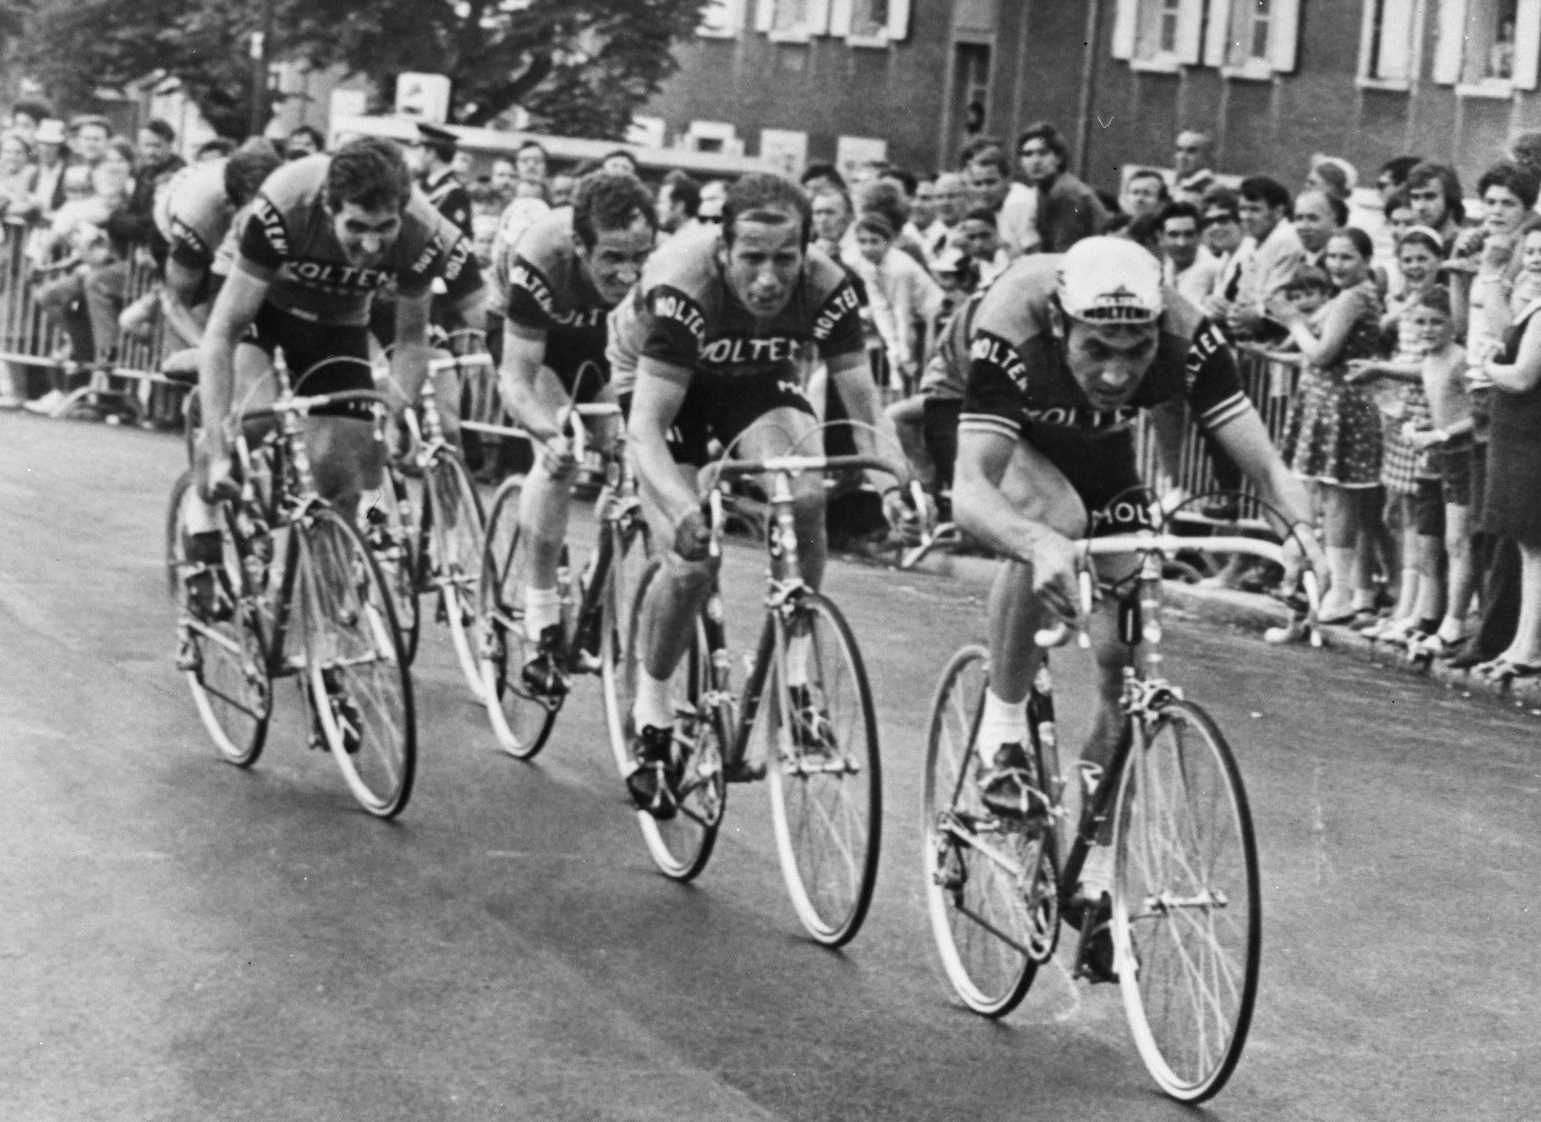 File:Molteni, Team time trial prologue, 1971 Tour de ...